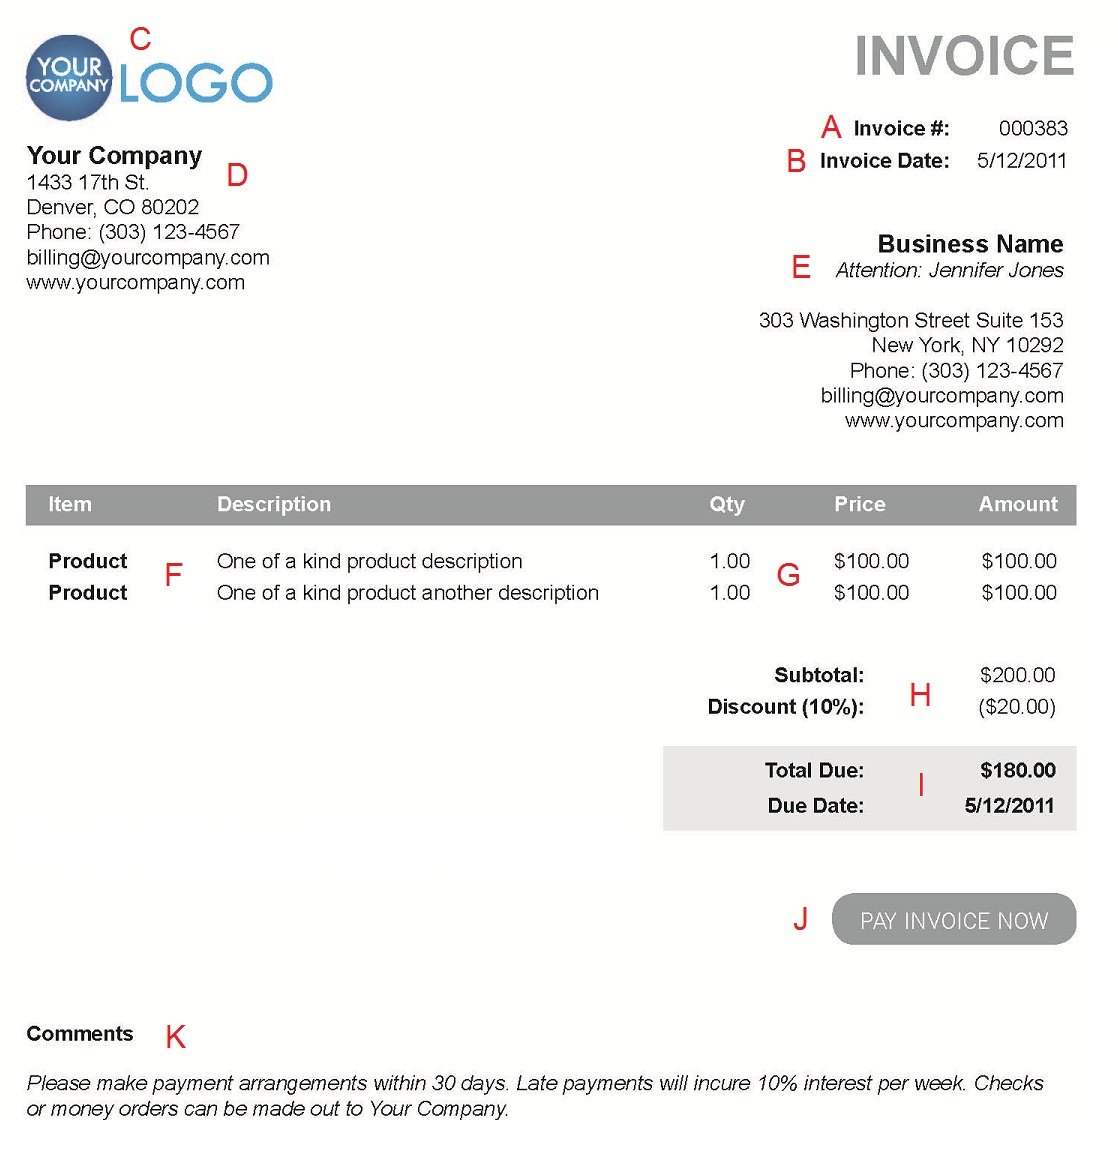 Pigbrotherus  Pleasing The  Different Sections Of An Electronic Payment Invoice With Foxy A  With Attractive Toll Plate Invoice Also Quickbooks Email Invoices In Addition Dealer Invoice Vs Msrp And Roofing Invoice As Well As Printable Invoices Free Additionally Invoice Pro From Paysimplecom With Pigbrotherus  Foxy The  Different Sections Of An Electronic Payment Invoice With Attractive A  And Pleasing Toll Plate Invoice Also Quickbooks Email Invoices In Addition Dealer Invoice Vs Msrp From Paysimplecom